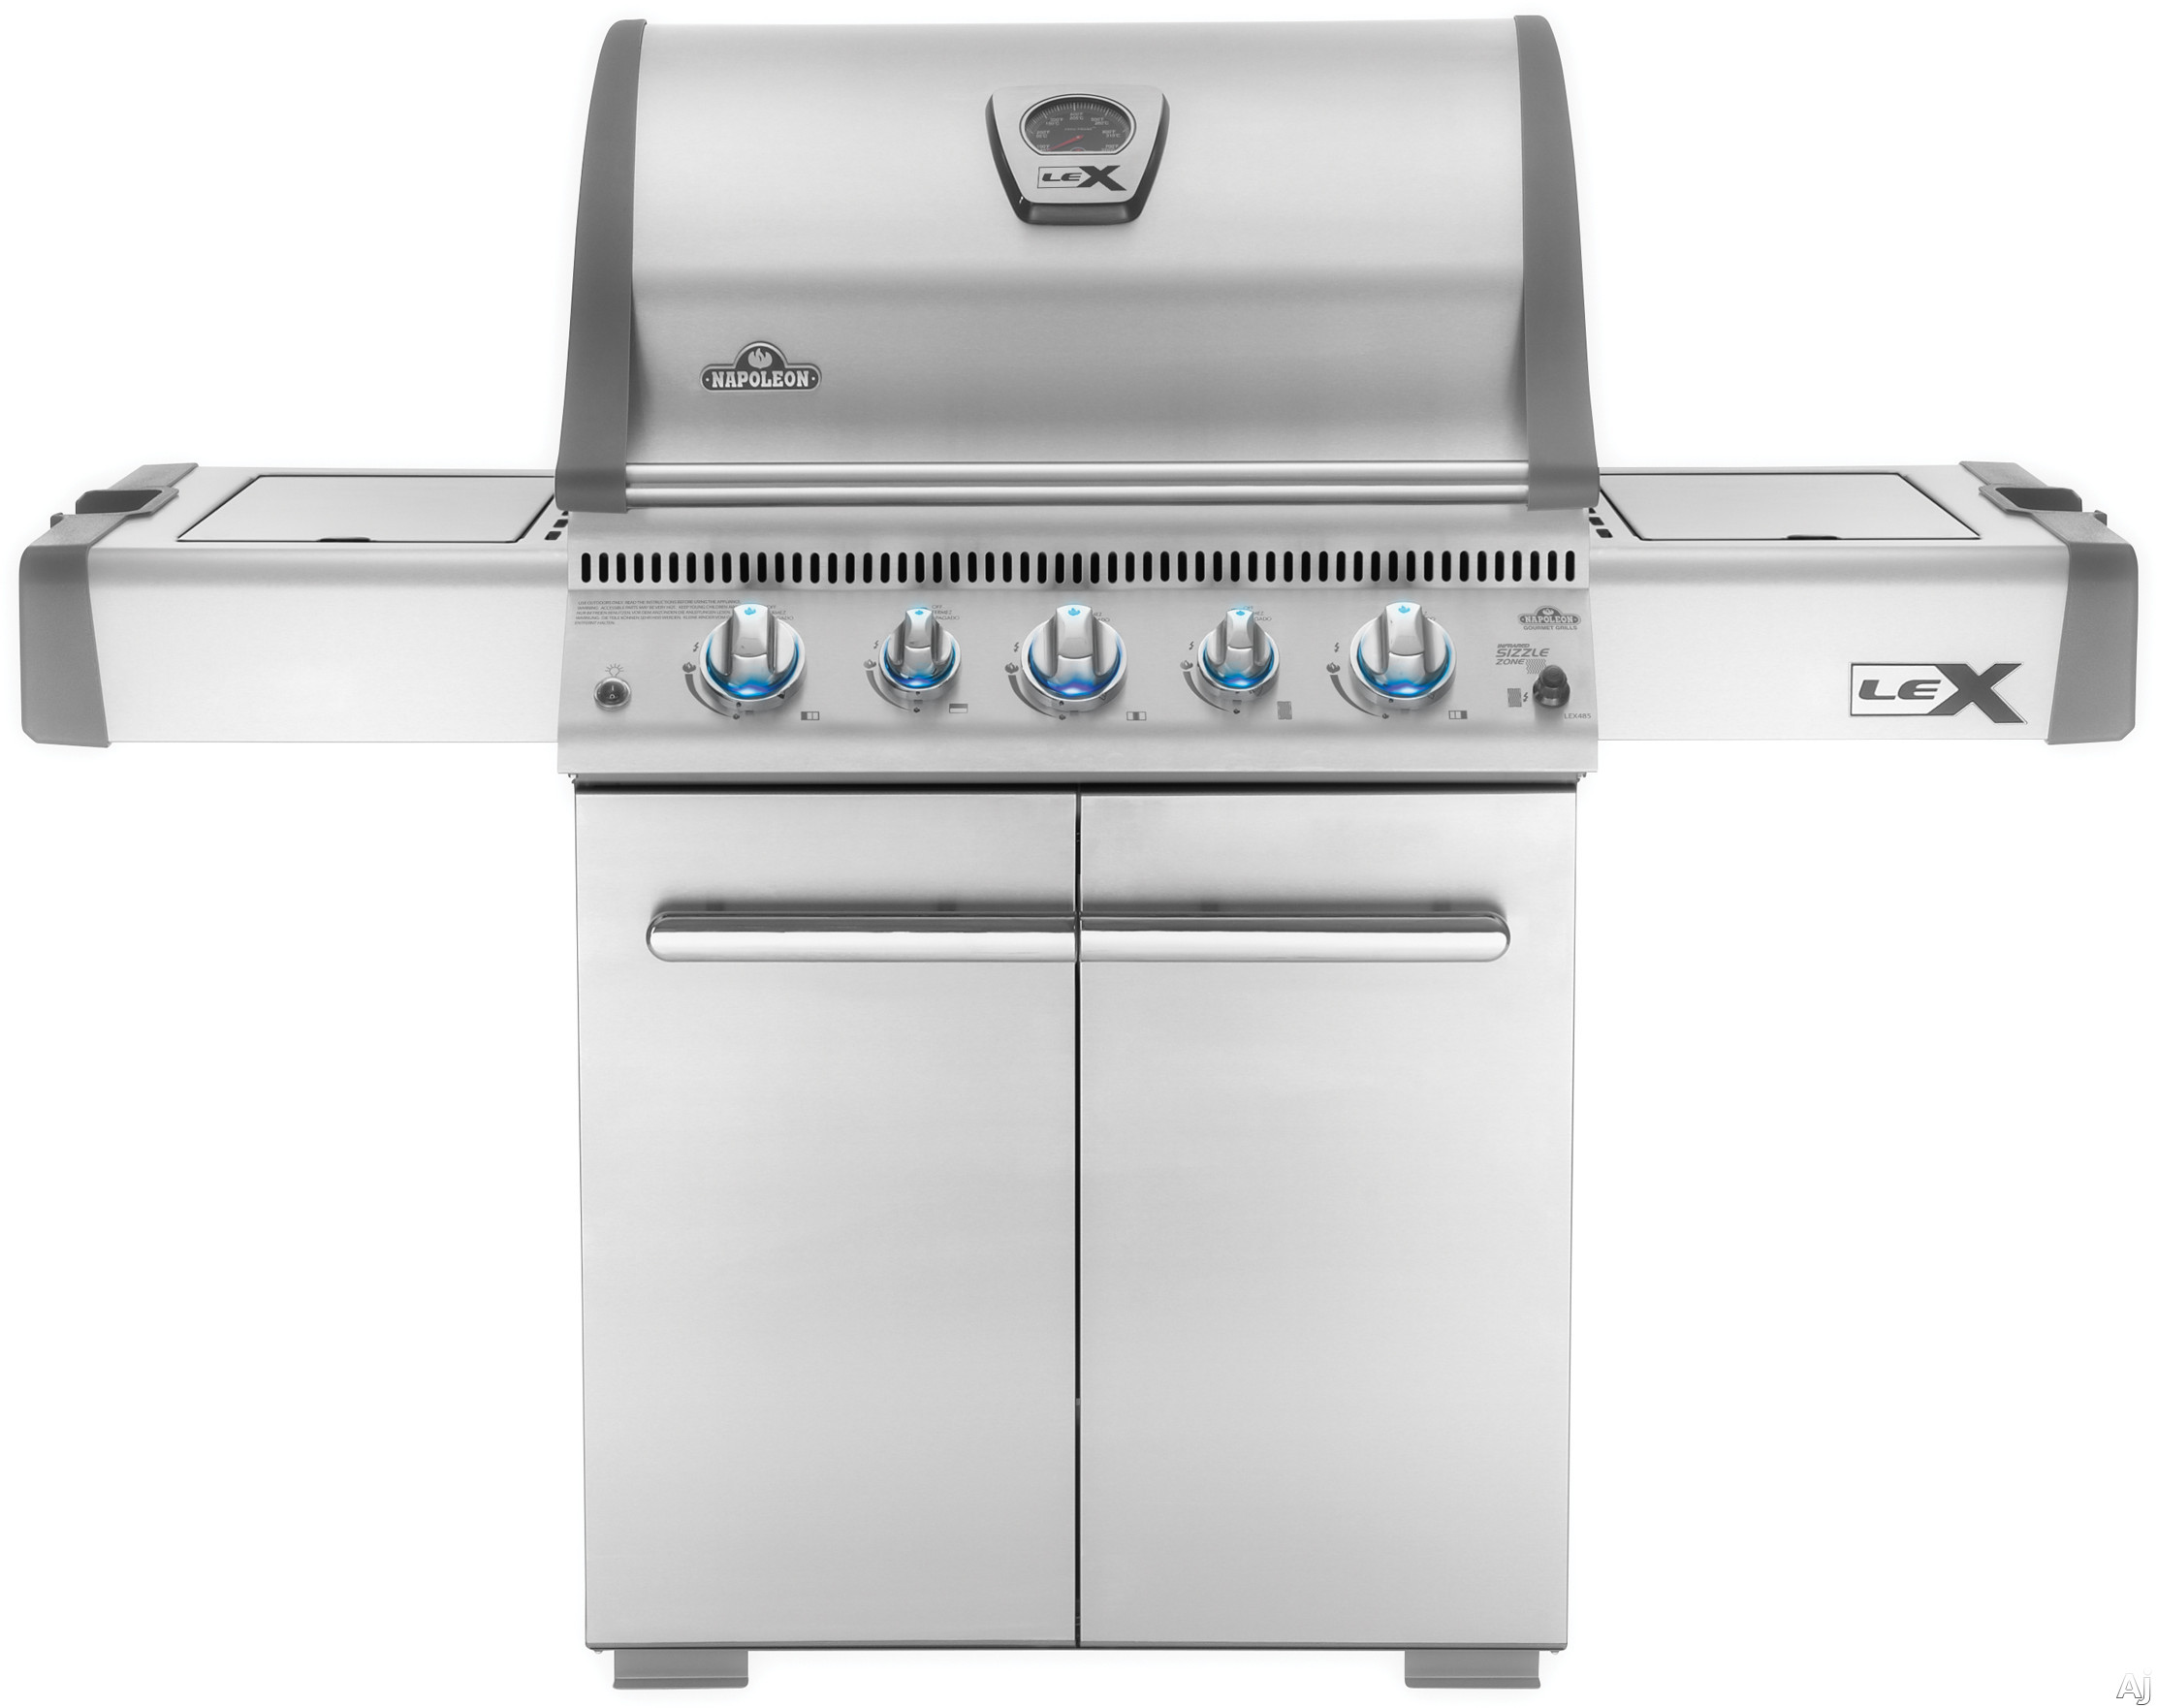 Napoleon LEX Series LEX485RSIBNSS1 62 Inch Freestanding Gas Grill with Infrared Burner, SIZZLE ZONE, i-GLOW, Backlit, 675 sq. in. Cooking Area, 74,000 Total BTU, 4 Burners, Side Burner, Warming Rack a